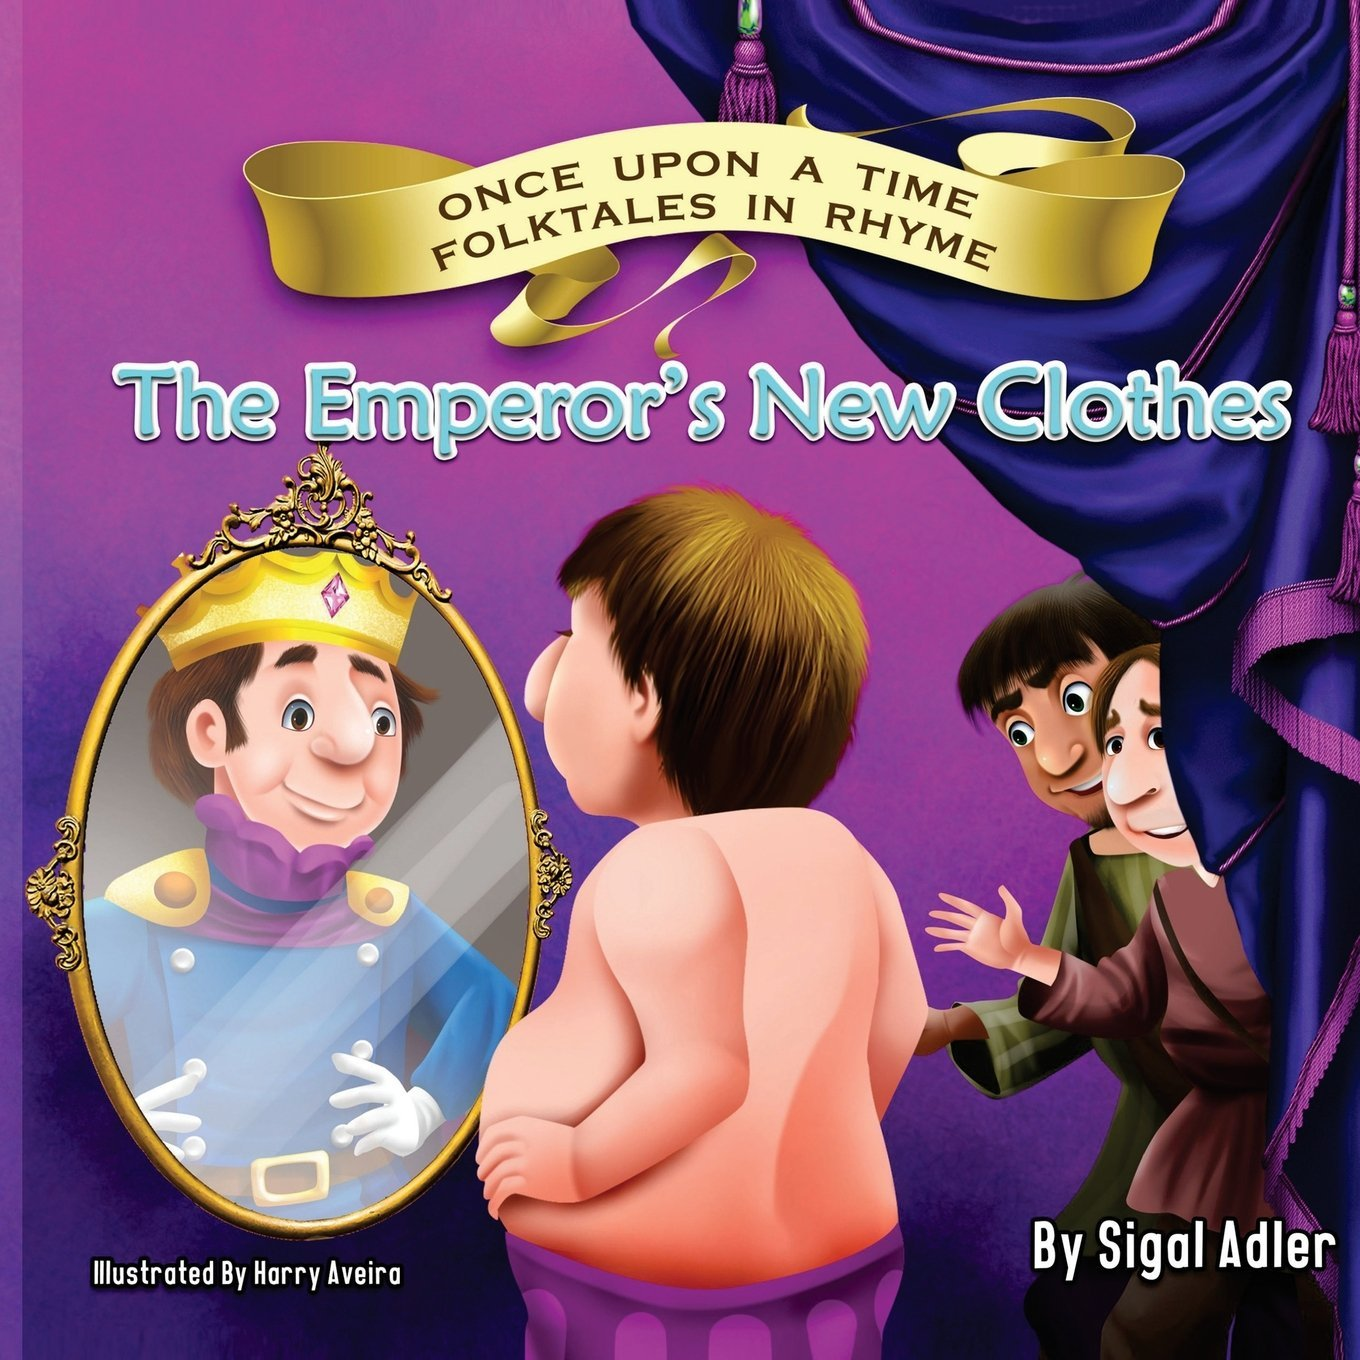 The Emperor's New Clothes: Hans Christian Andersen Stories in Verse for Kids (Children's Bedtime Dreaming books Book) (Volume 2) PDF